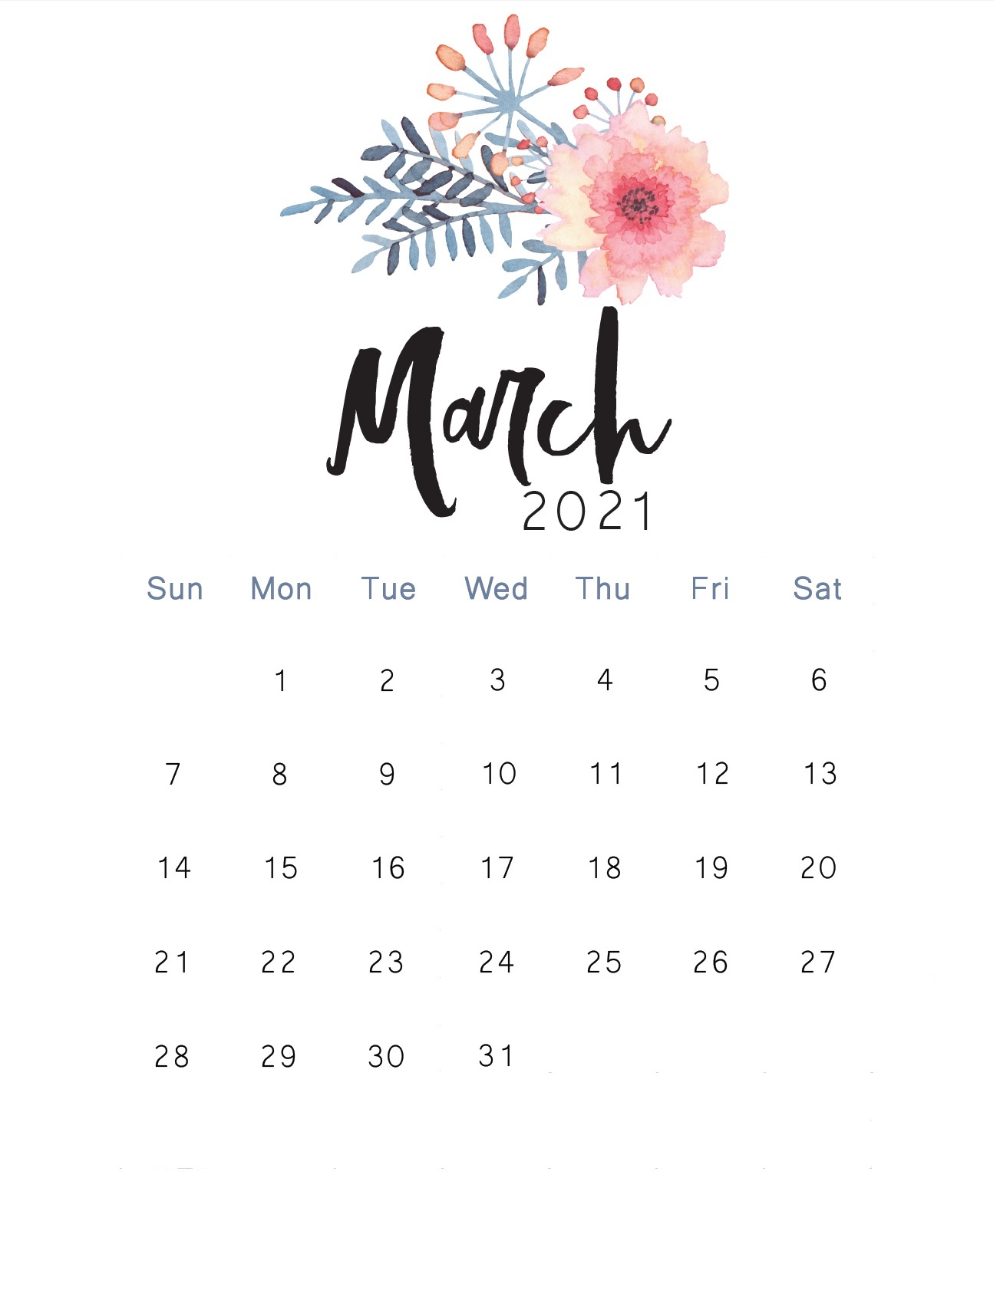 March 2021 Calendar Wallpaper Cute   Find amp download